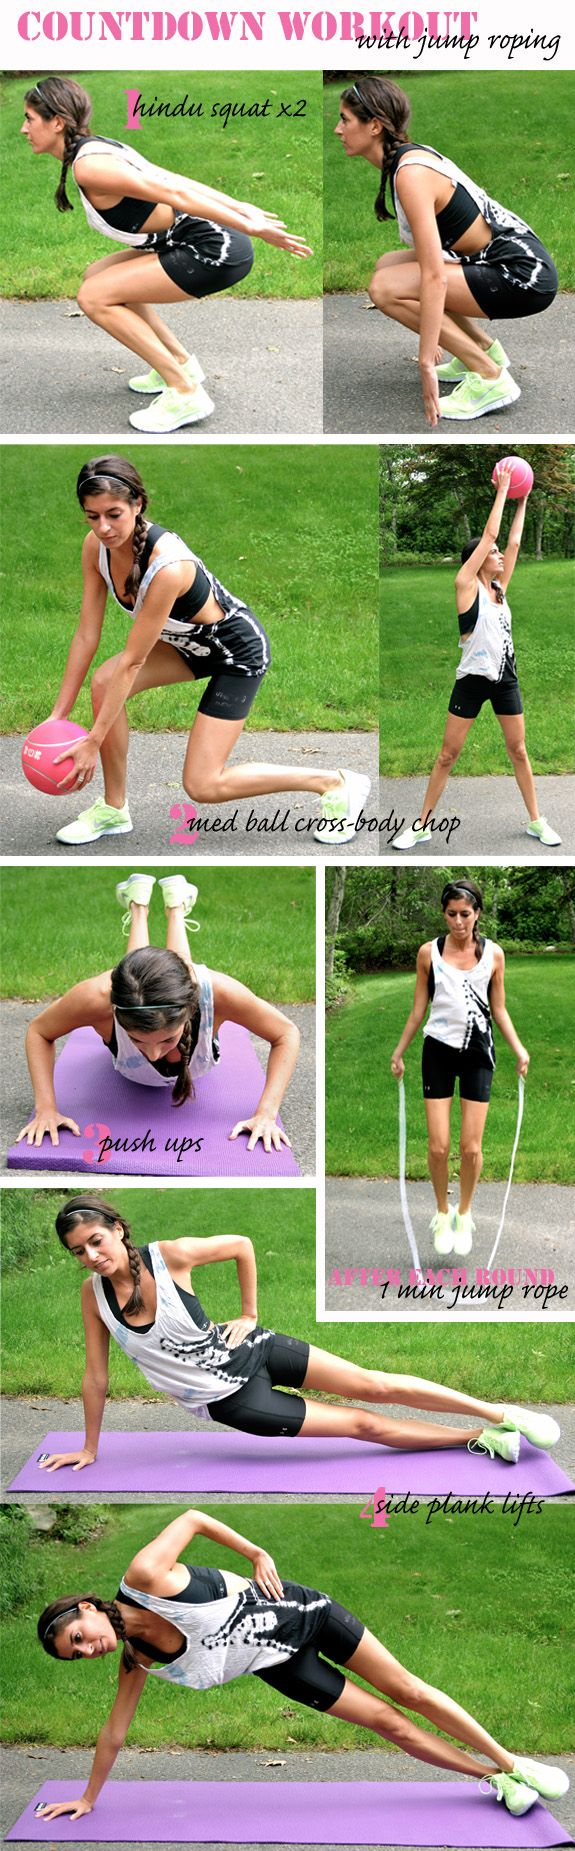 countdown workout with jump roping intervals